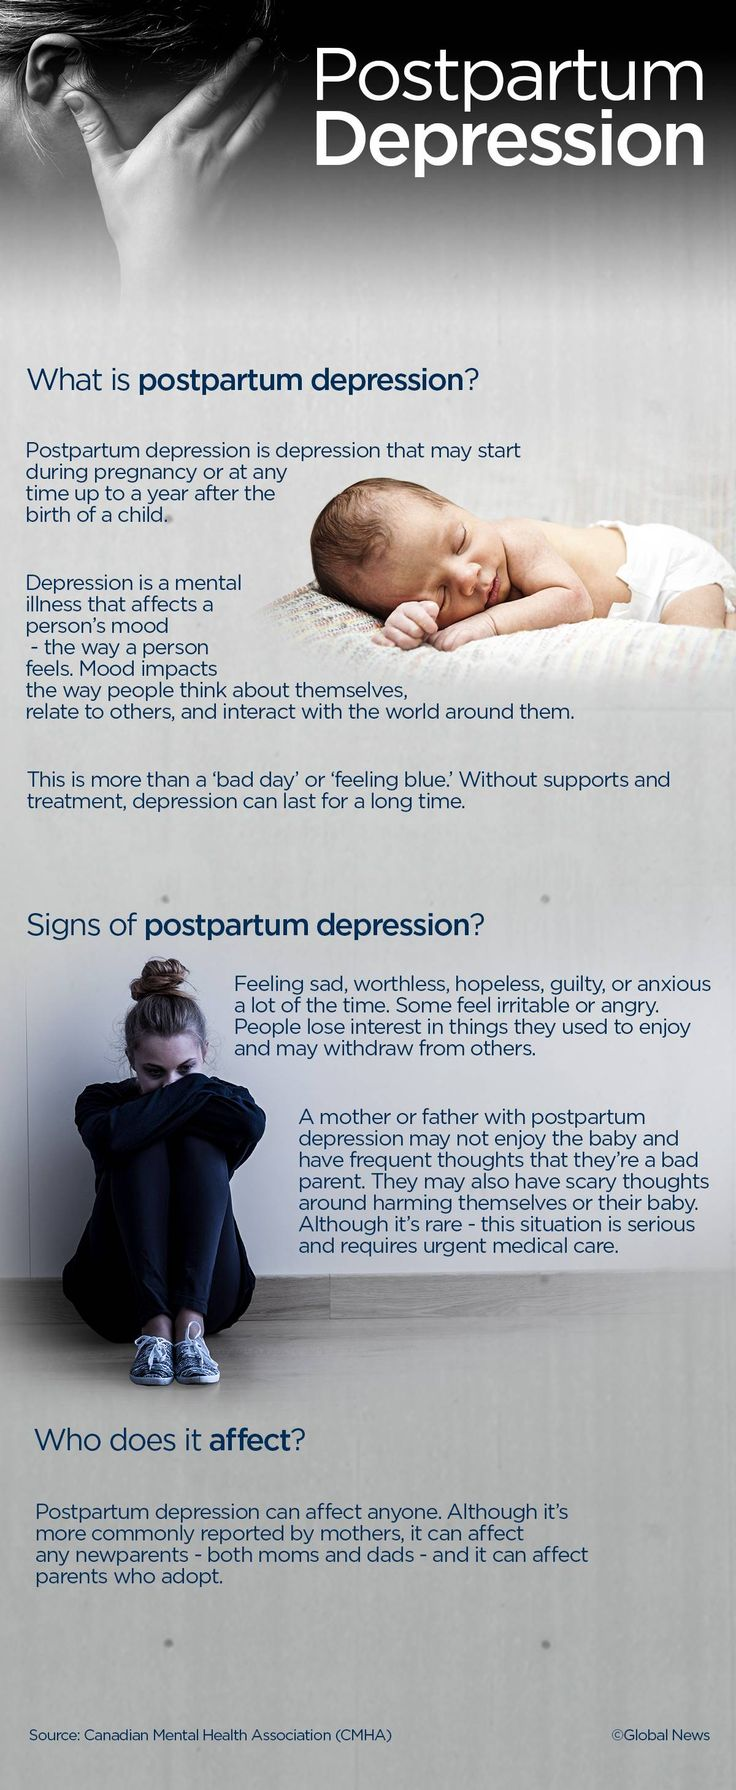 thesis statement for postpartum depression Abstract postpartum depression is a complex, excessively researched and   boyd, jr's damaging statement regarding eighteen papers that had been written   continue researching postpartum depression and turned it into my thesis  work.